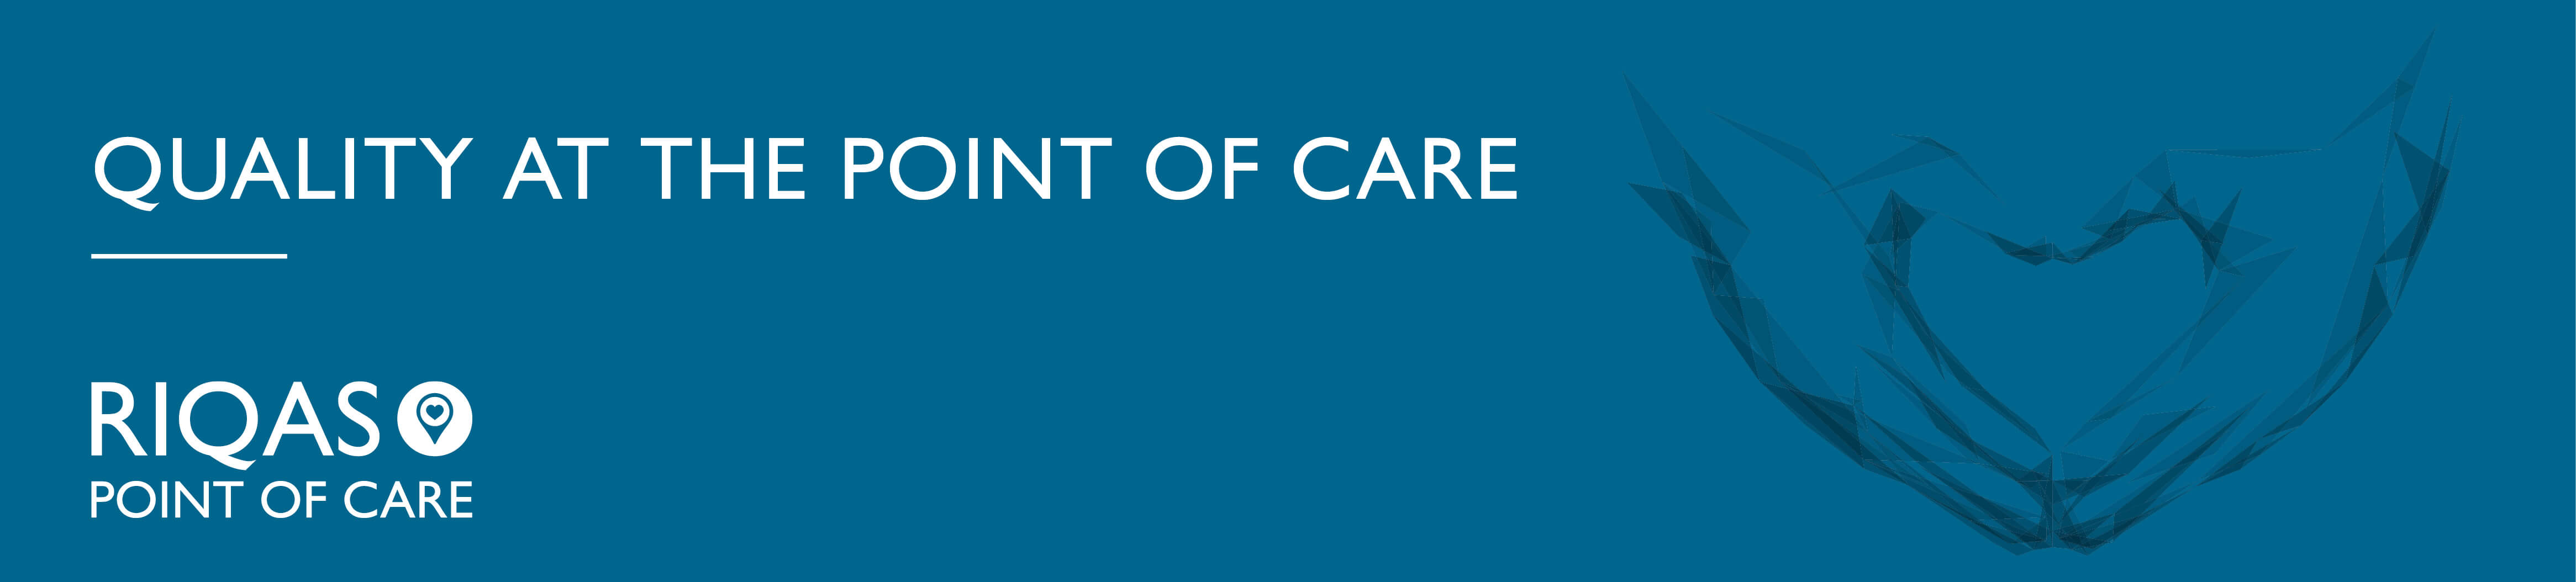 RIQAS-Point of Care-Web-Banner